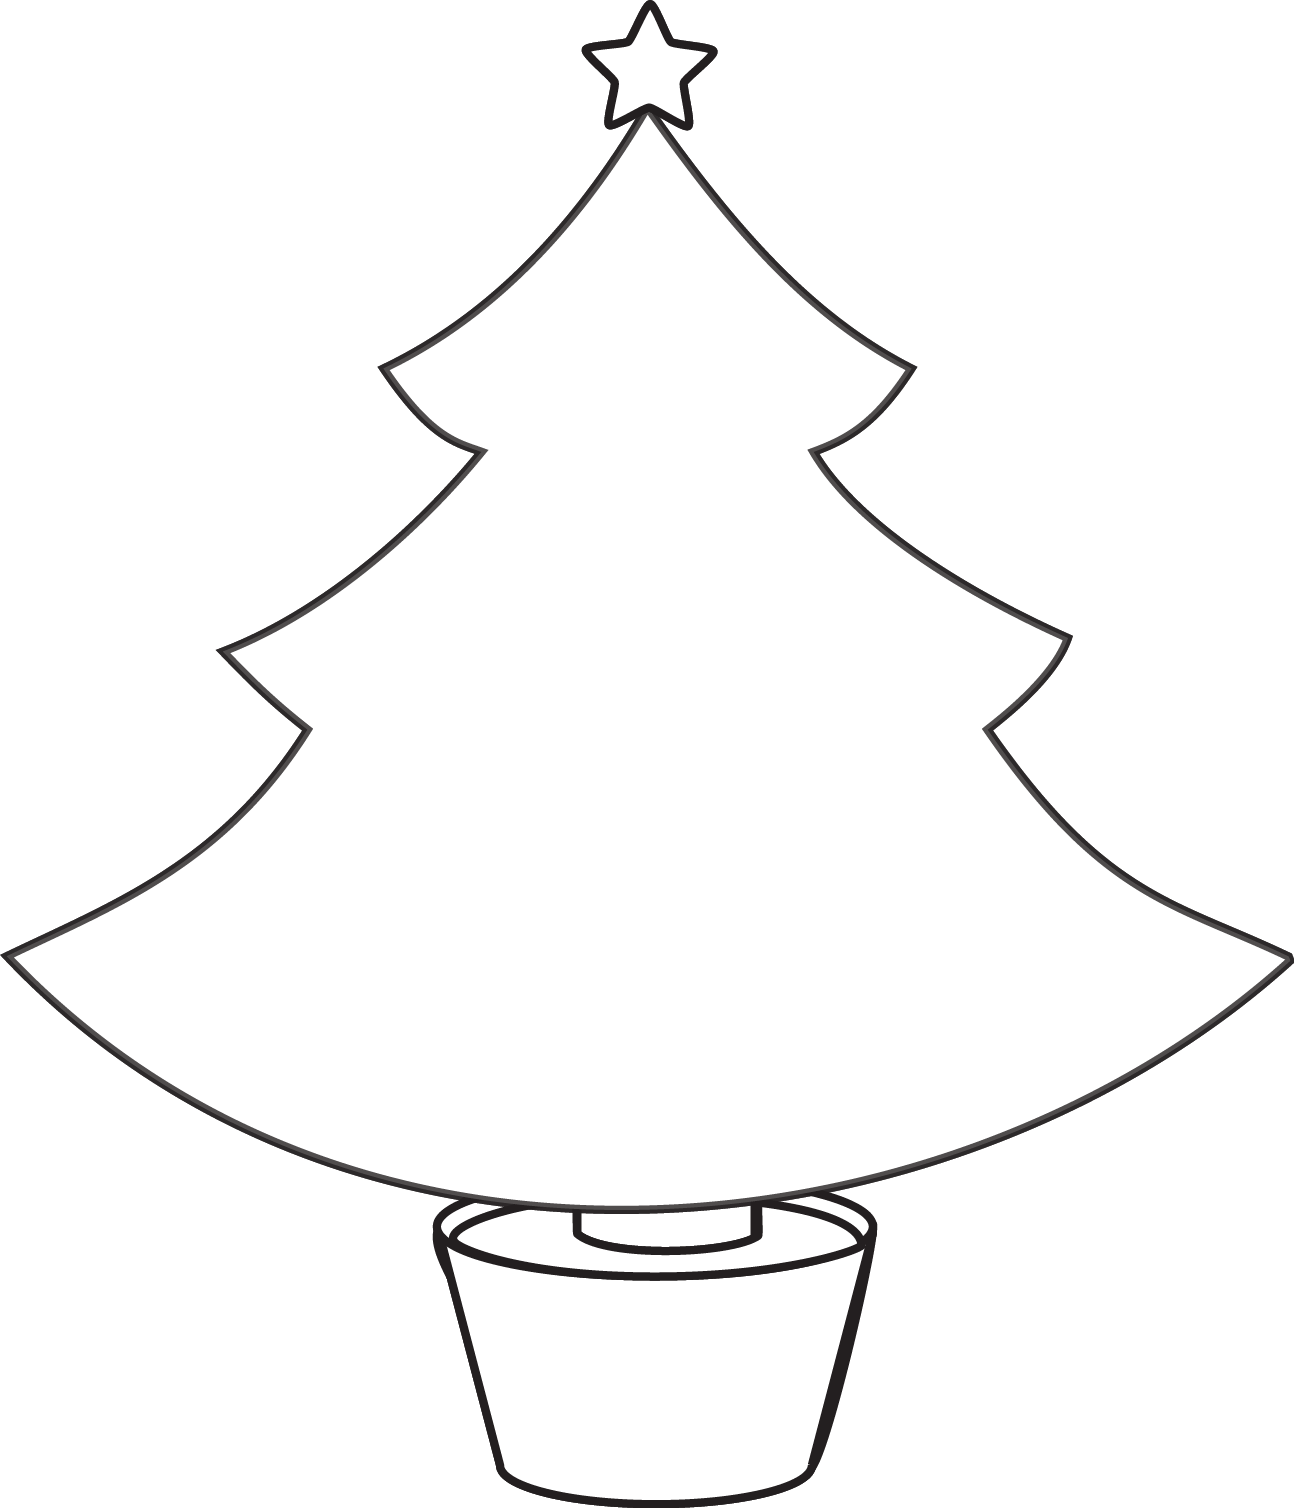 Adult Best Christmas Bulb Coloring Page Gallery Images best christmas light bulb coloring page clipart panda free images